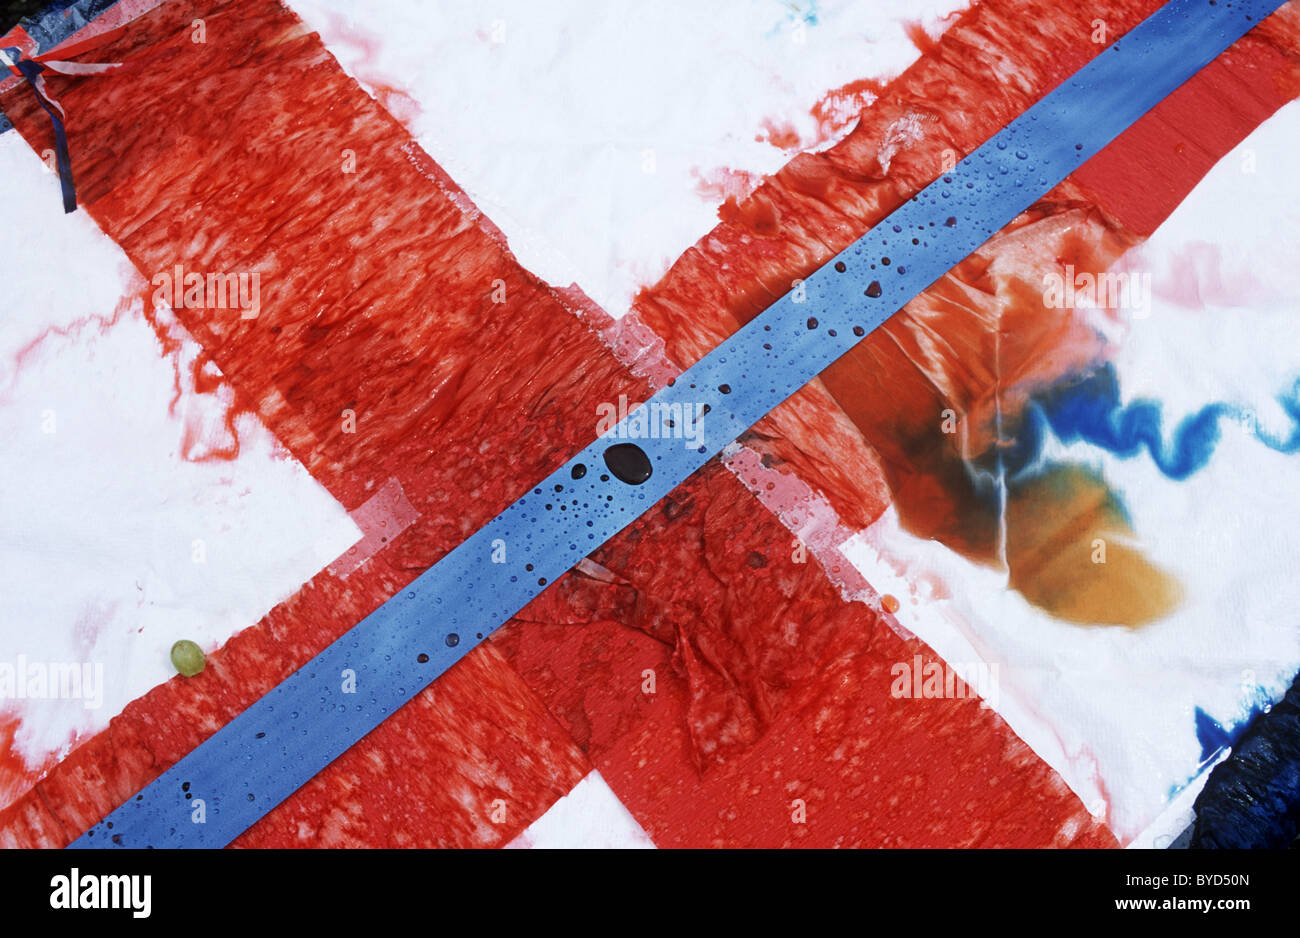 Running colours of a table paper covering, rained on and spoiled after unseasonal rain during patriotic VE Day street - Stock Image